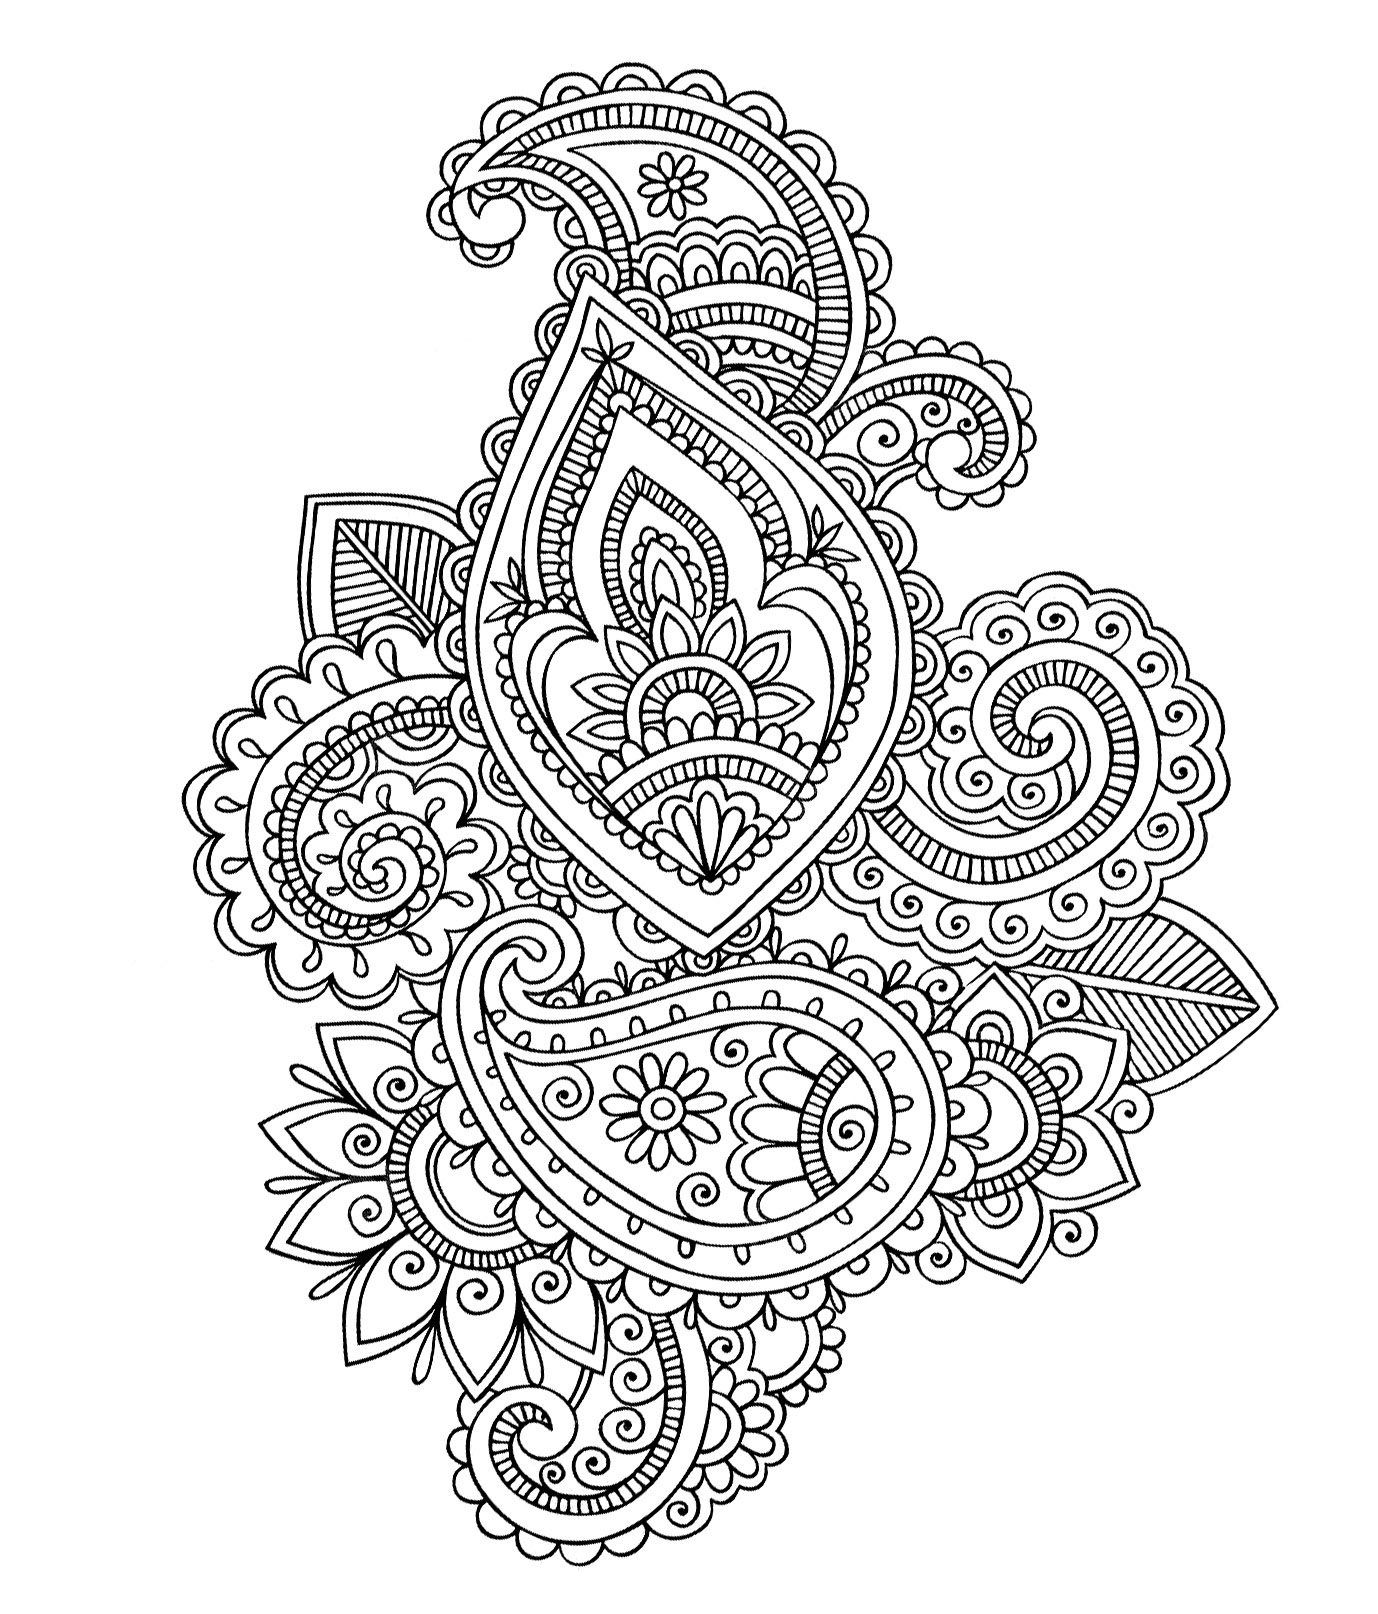 Paisley cashemire - Oriental Adult Coloring Pages